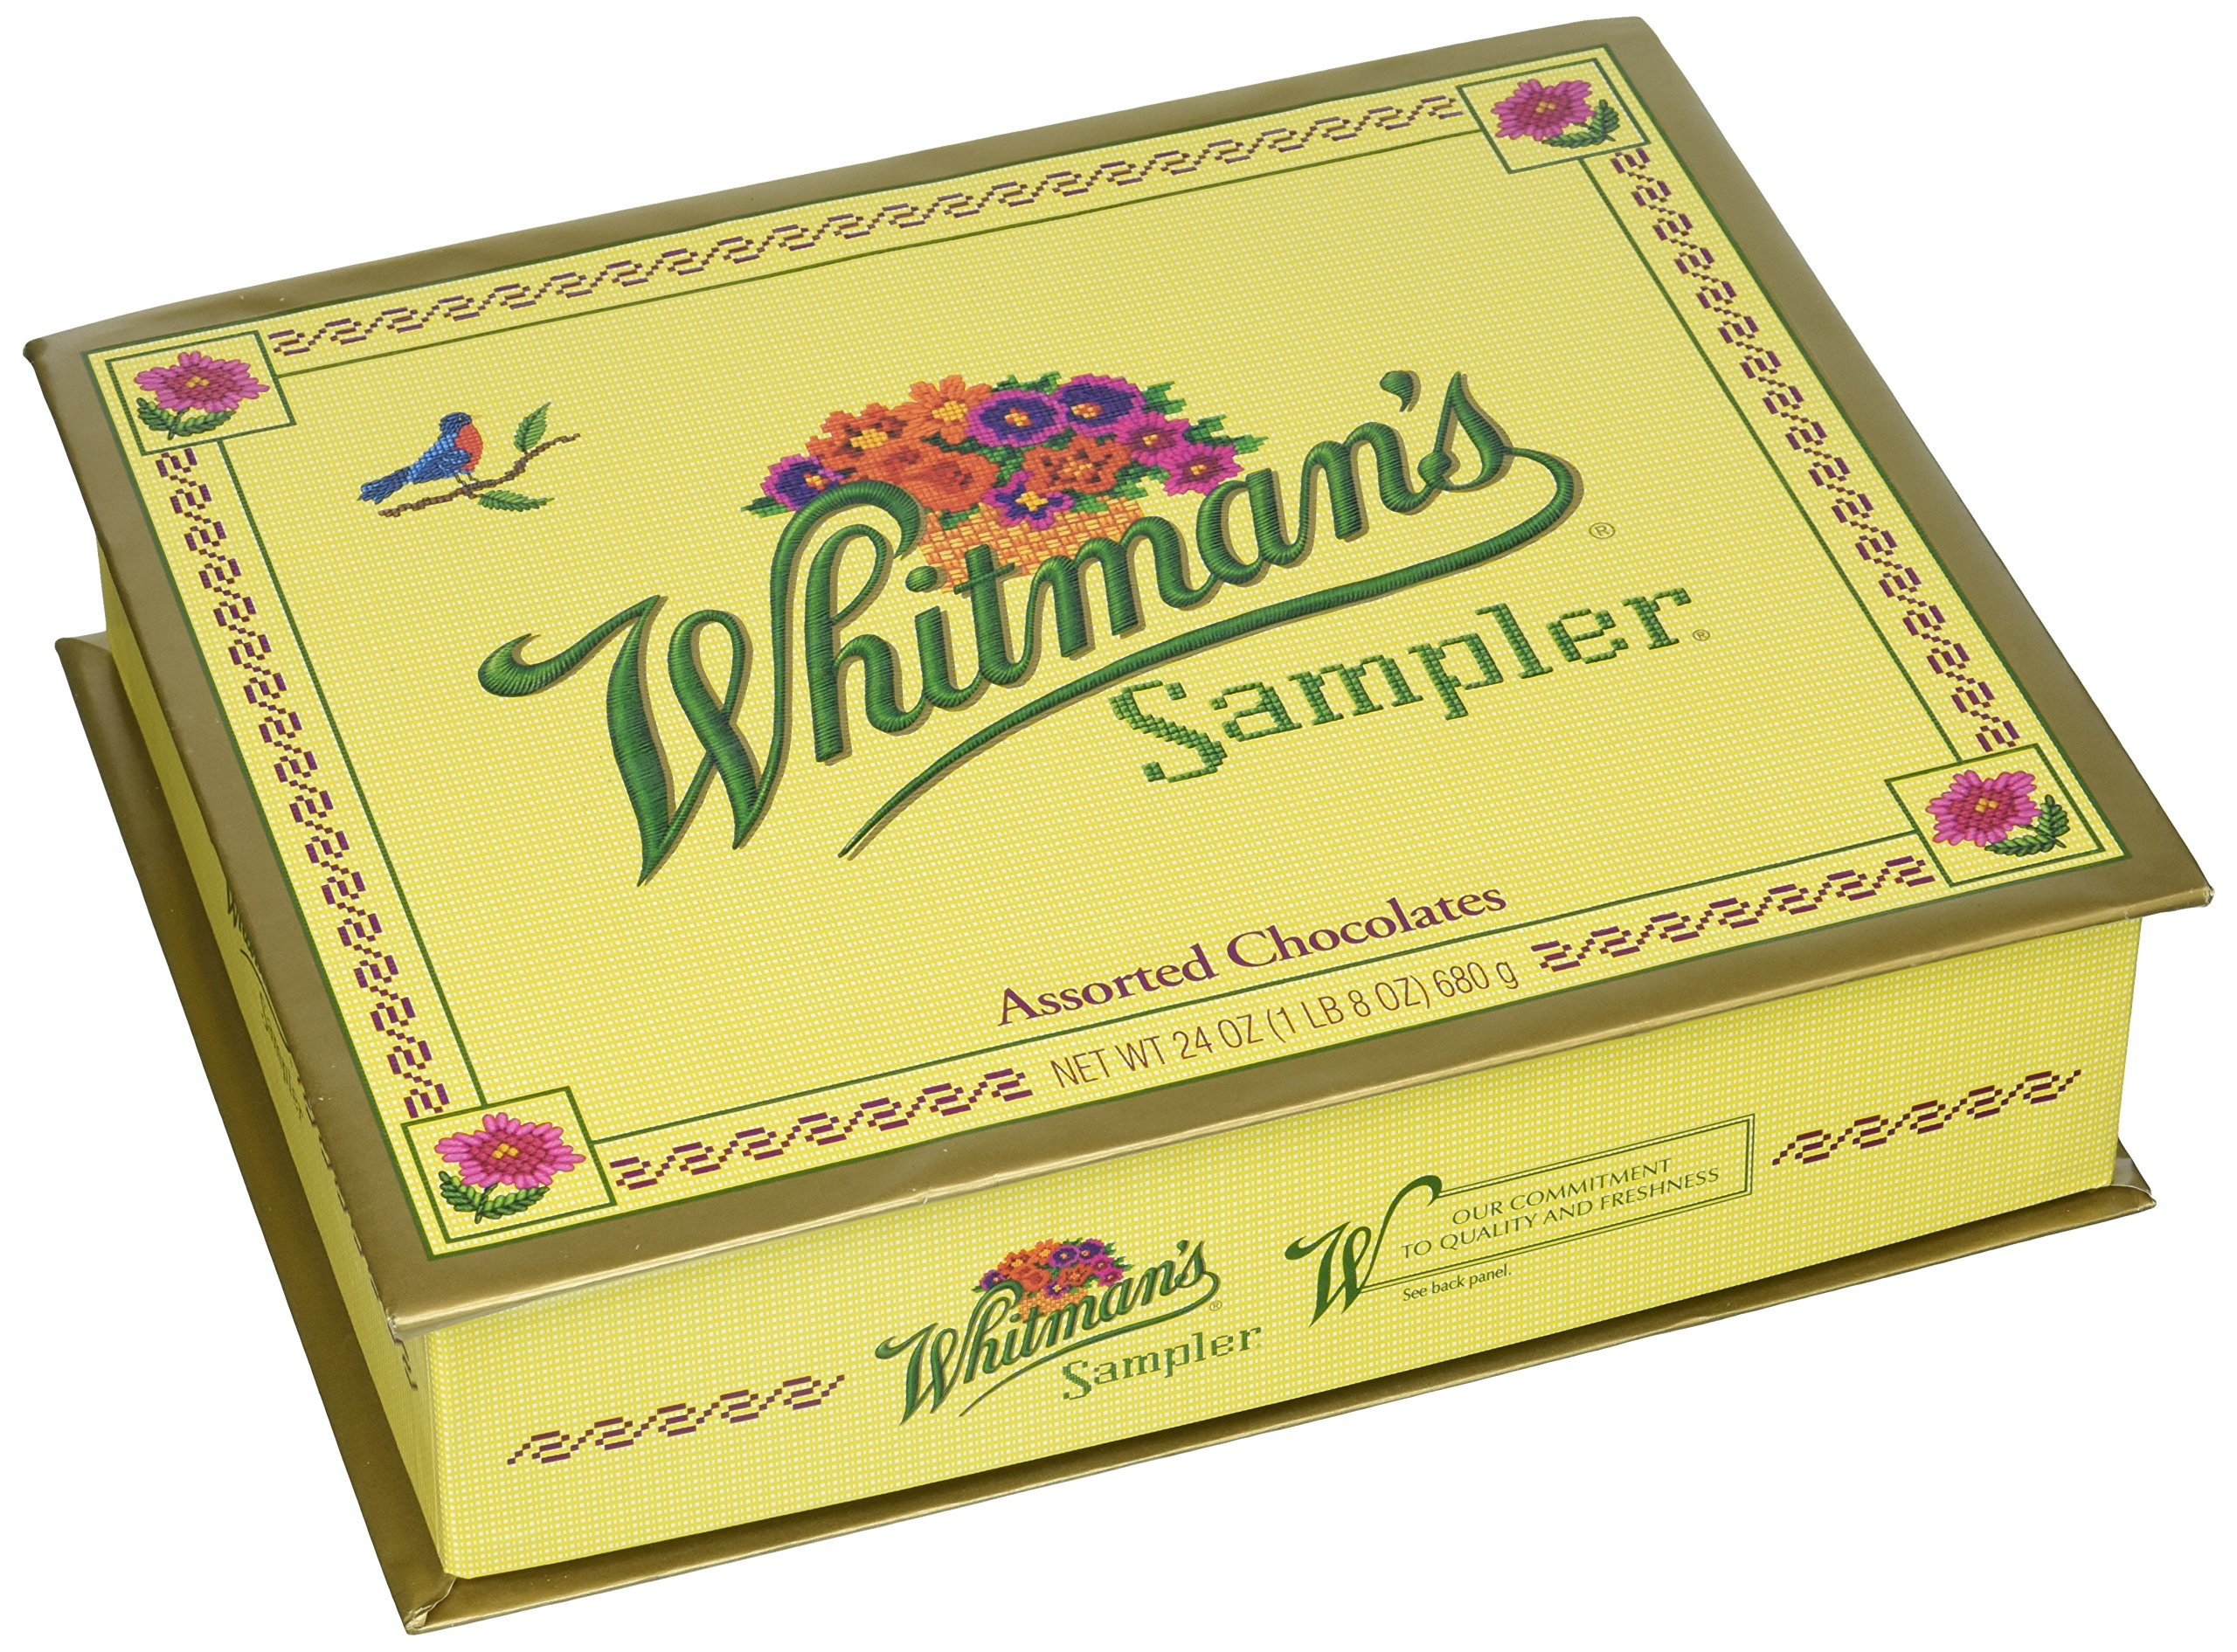 Whitman's Sampler Assorted Chocolate, 24-Ounce Box